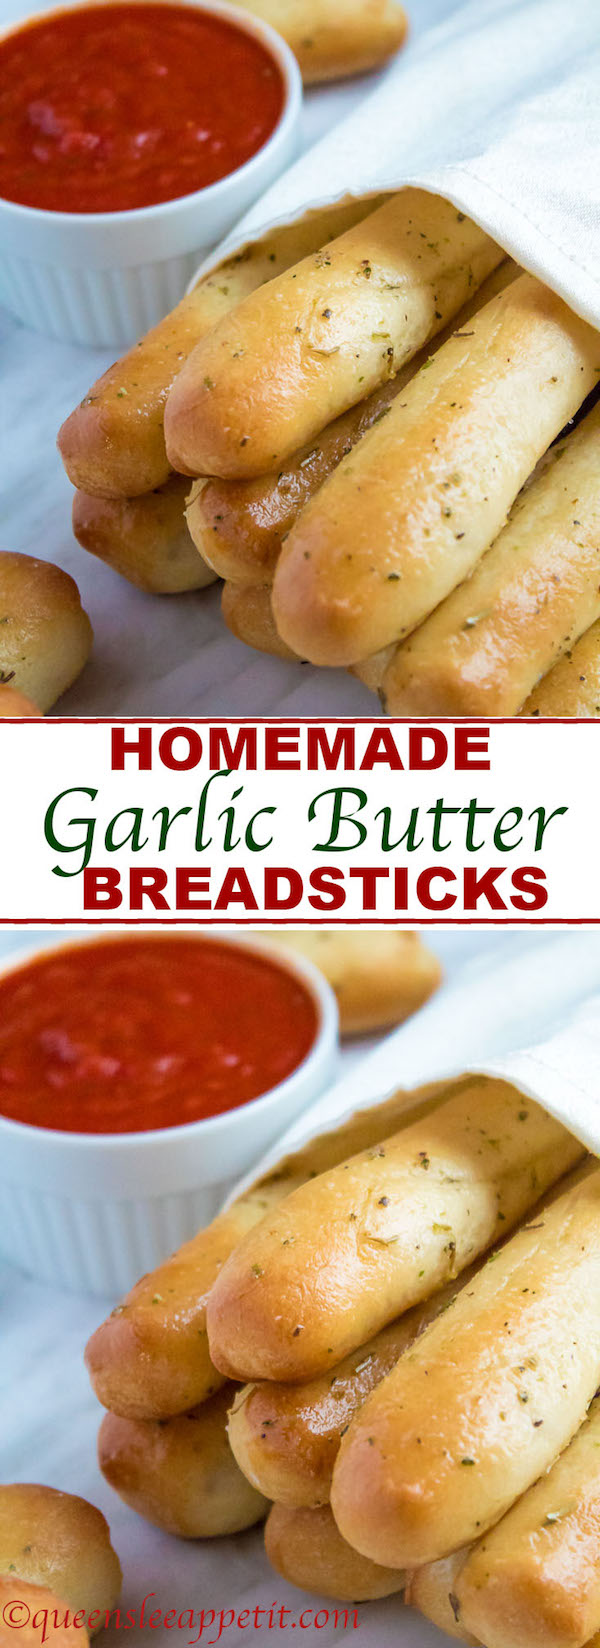 These Homemade Garlic Butter Breadsticks are incredibly soft, fluffy and buttery. They're so simple to make and are a great addition to all your meals!